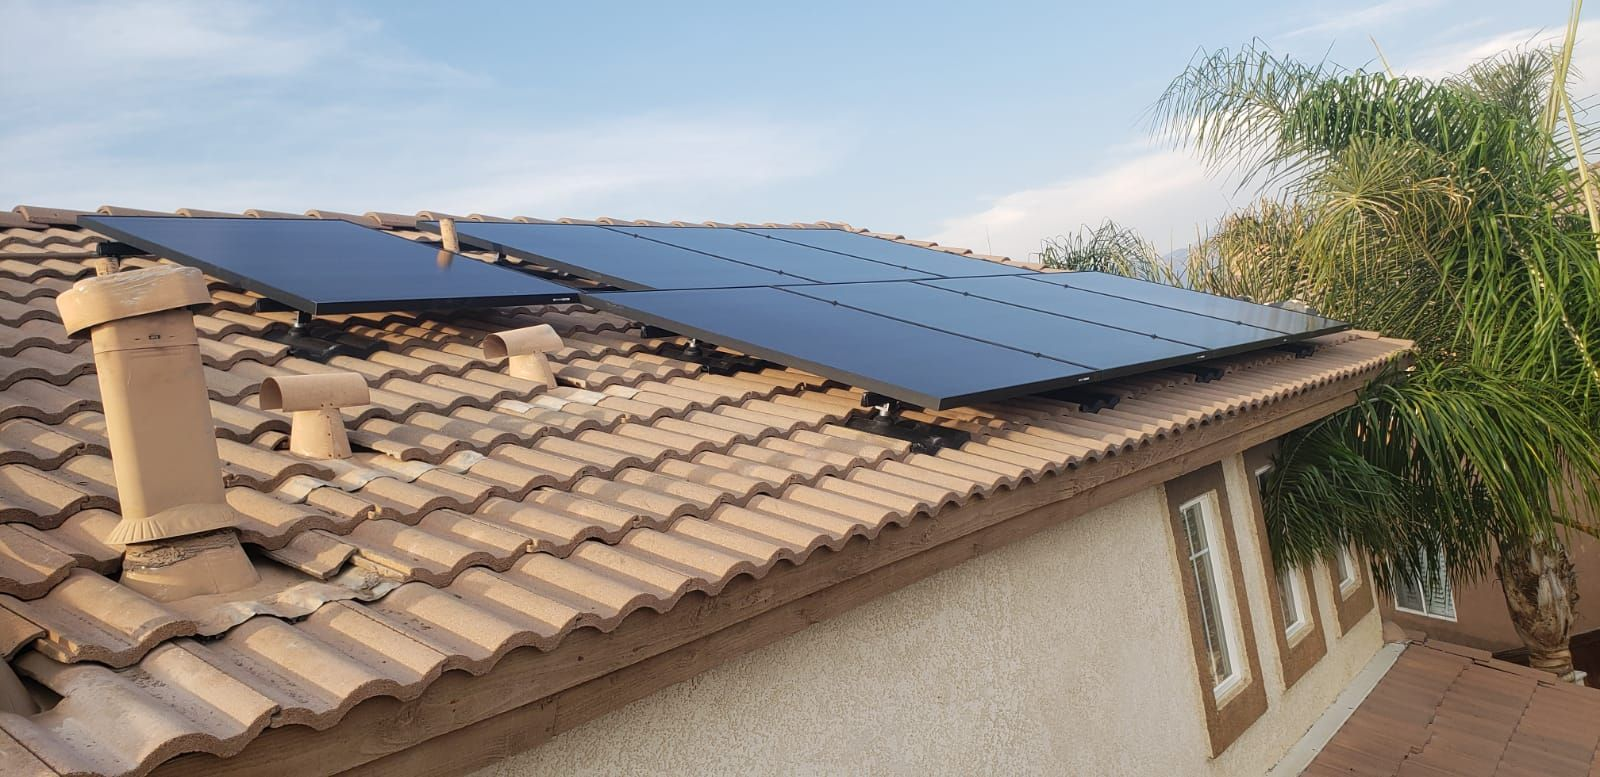 Why Should I Get Solar Panels in 2021?